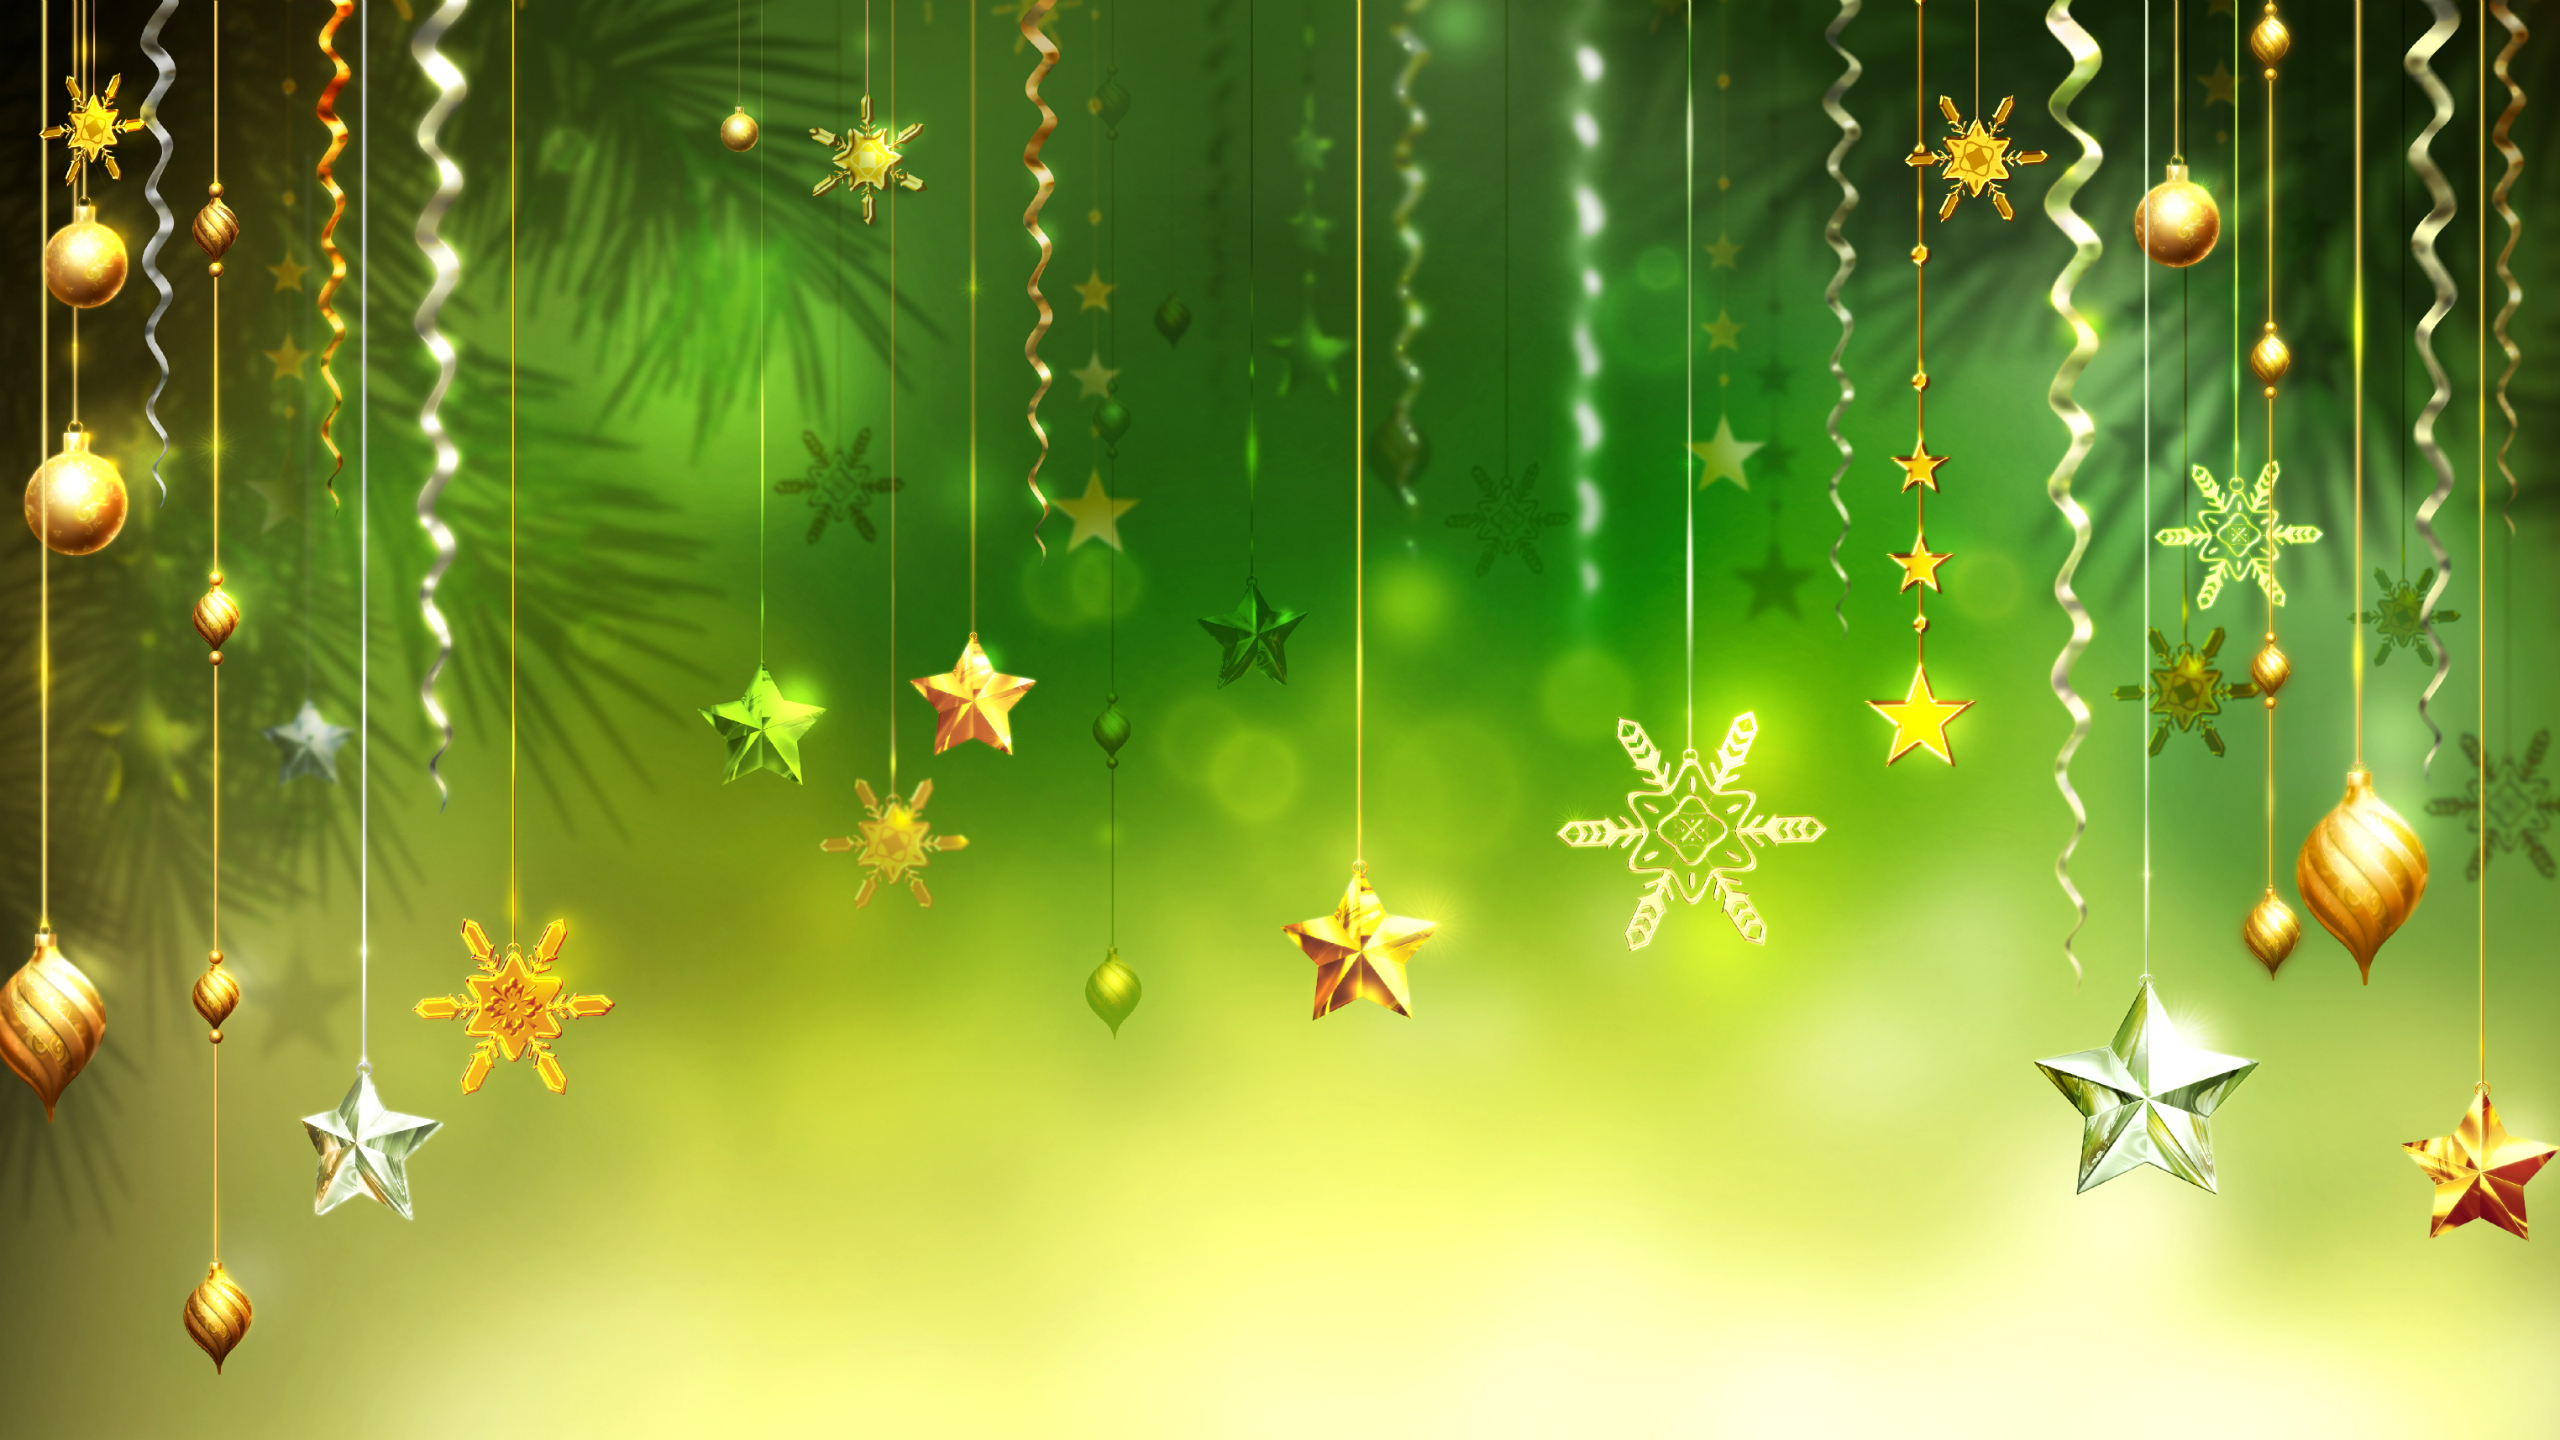 Xmas background images - Merry Christmas Wallpaper 1318463